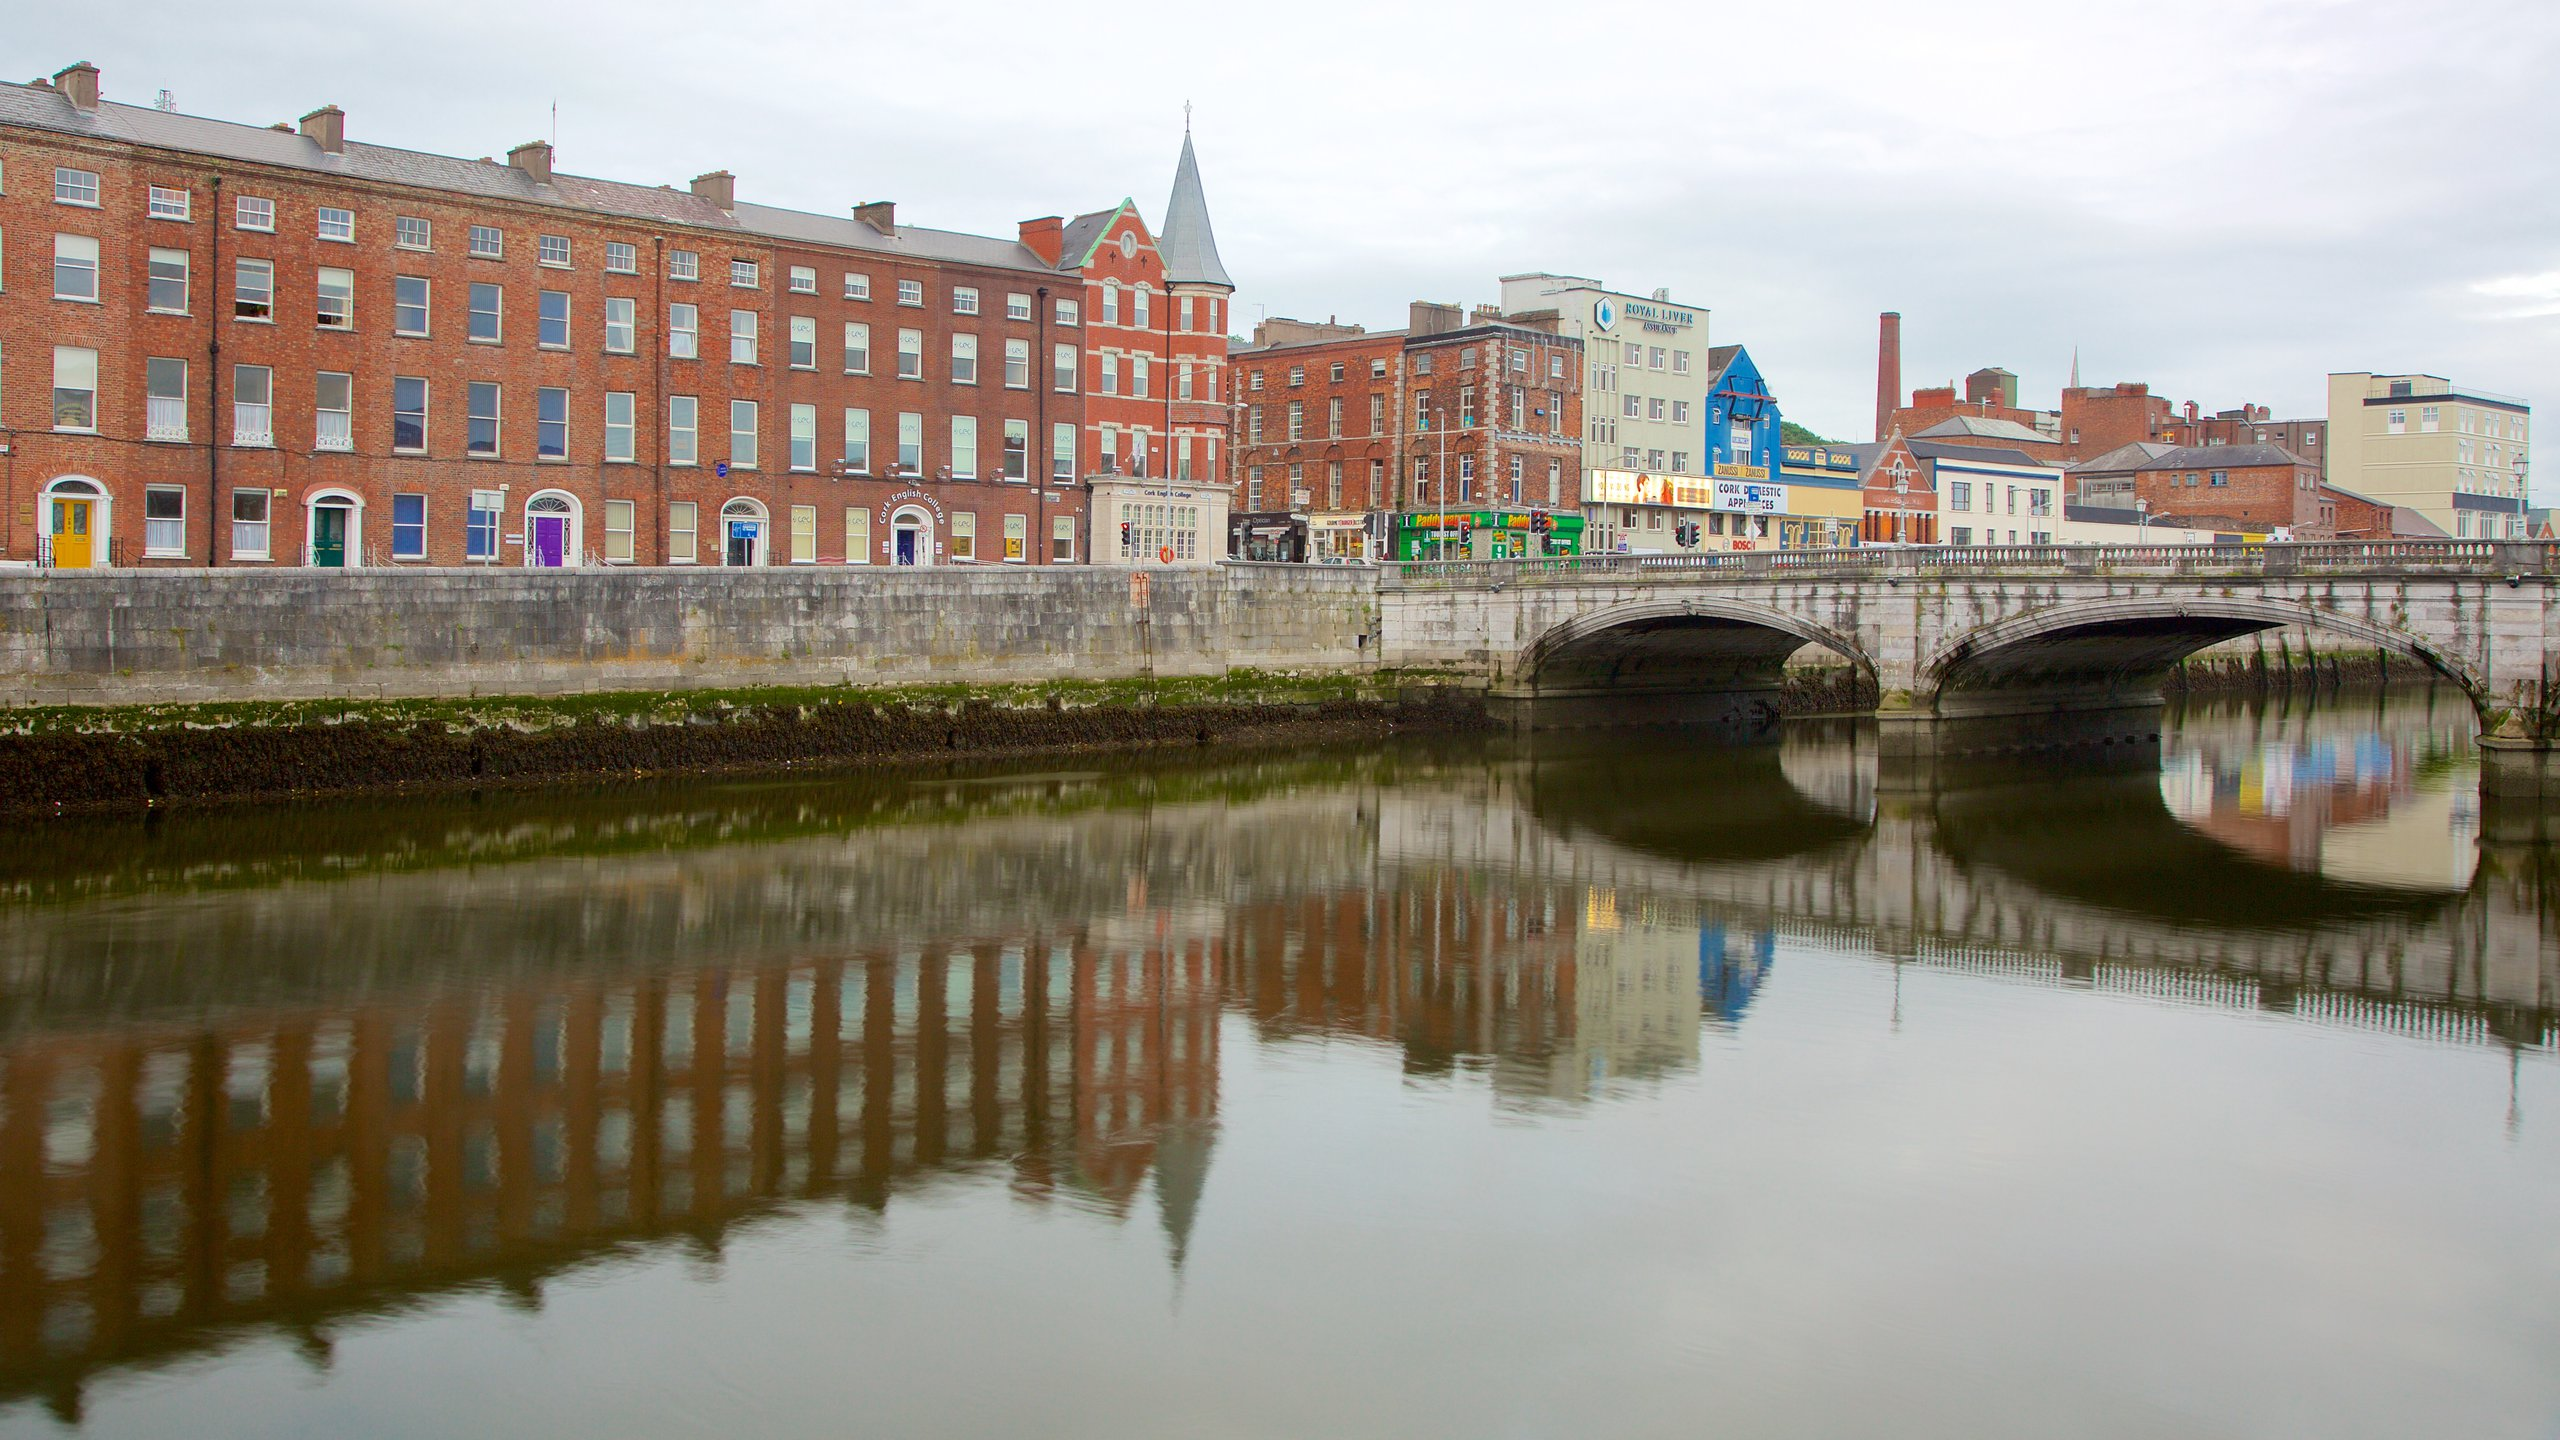 Take in views of the River Lee from this 18th-century bridge and wander through Cork's city center via one of the city's most historic streets.